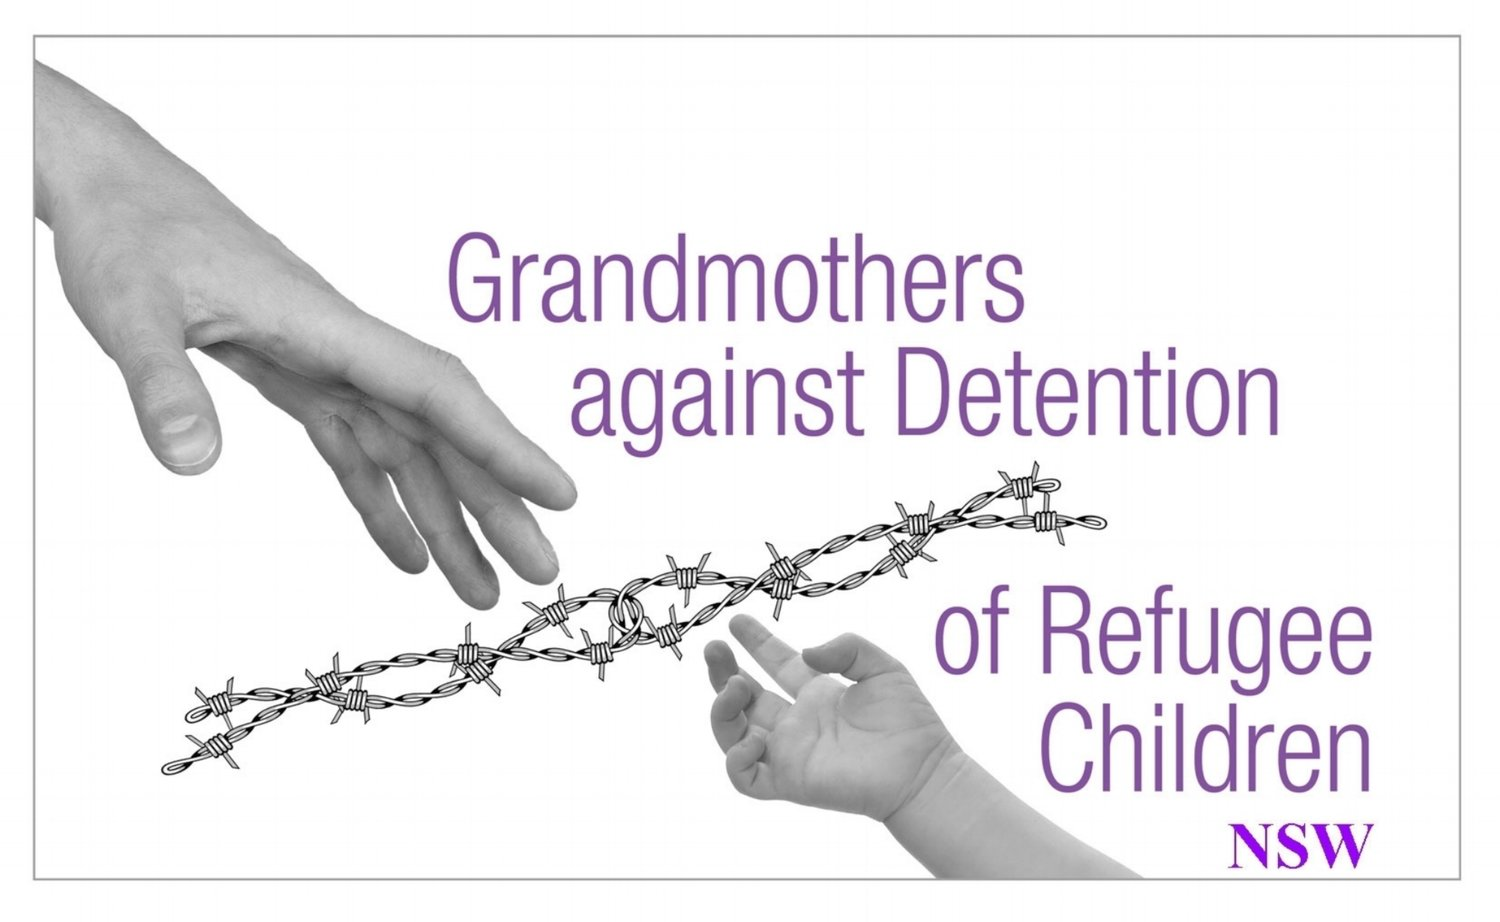 Grandmothers Against Detention of Refugee Children